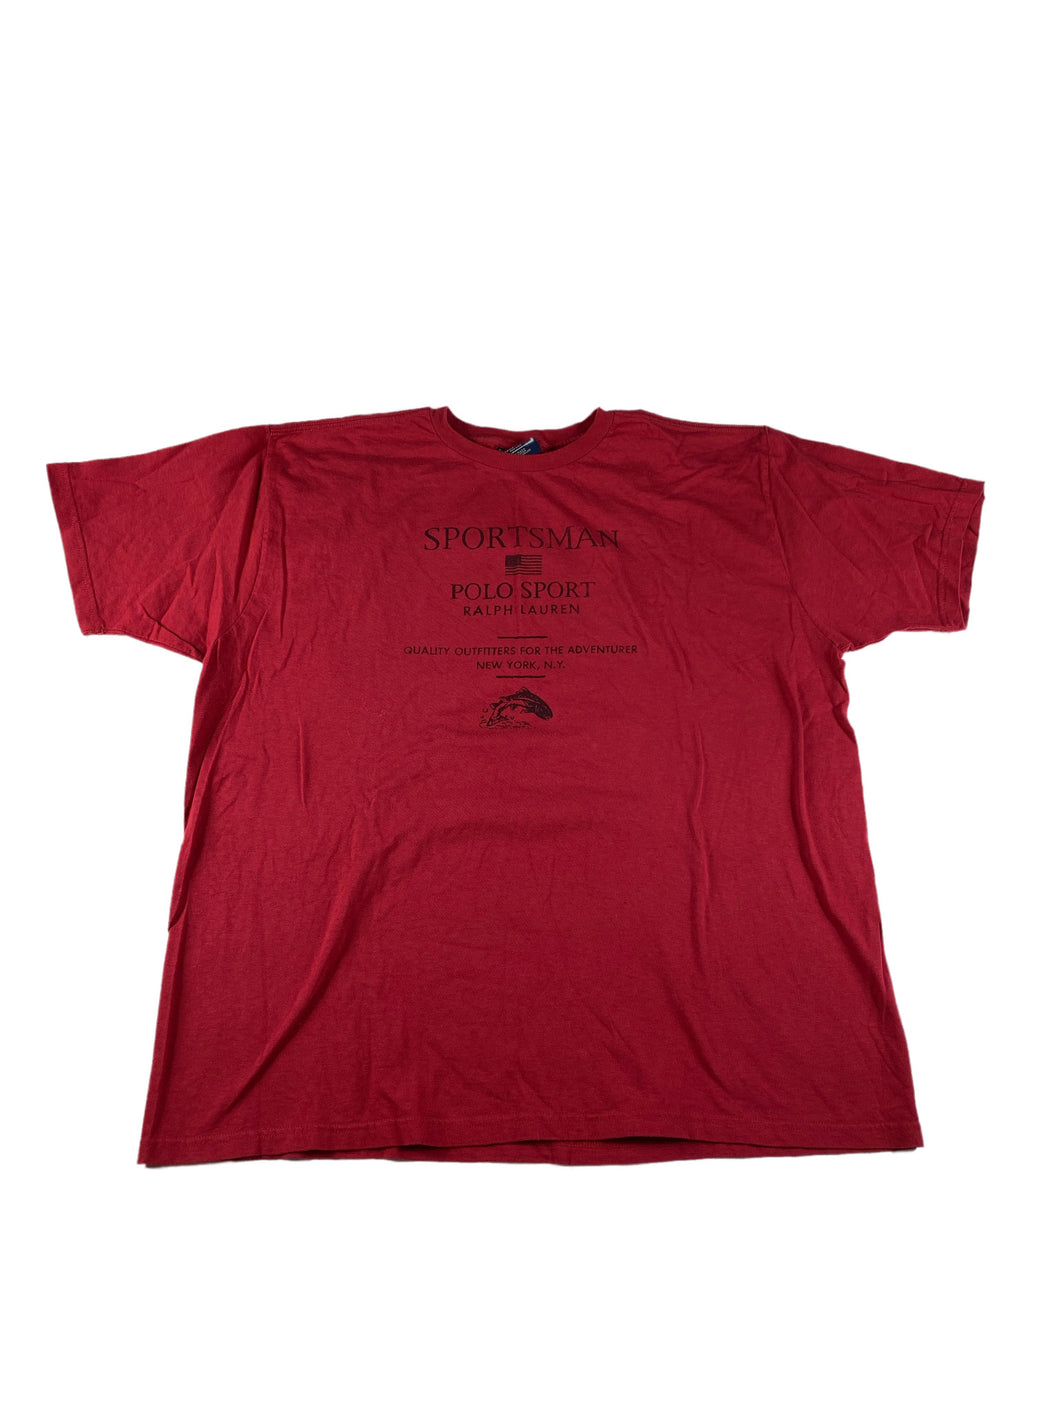 Polo Sportsman Tee